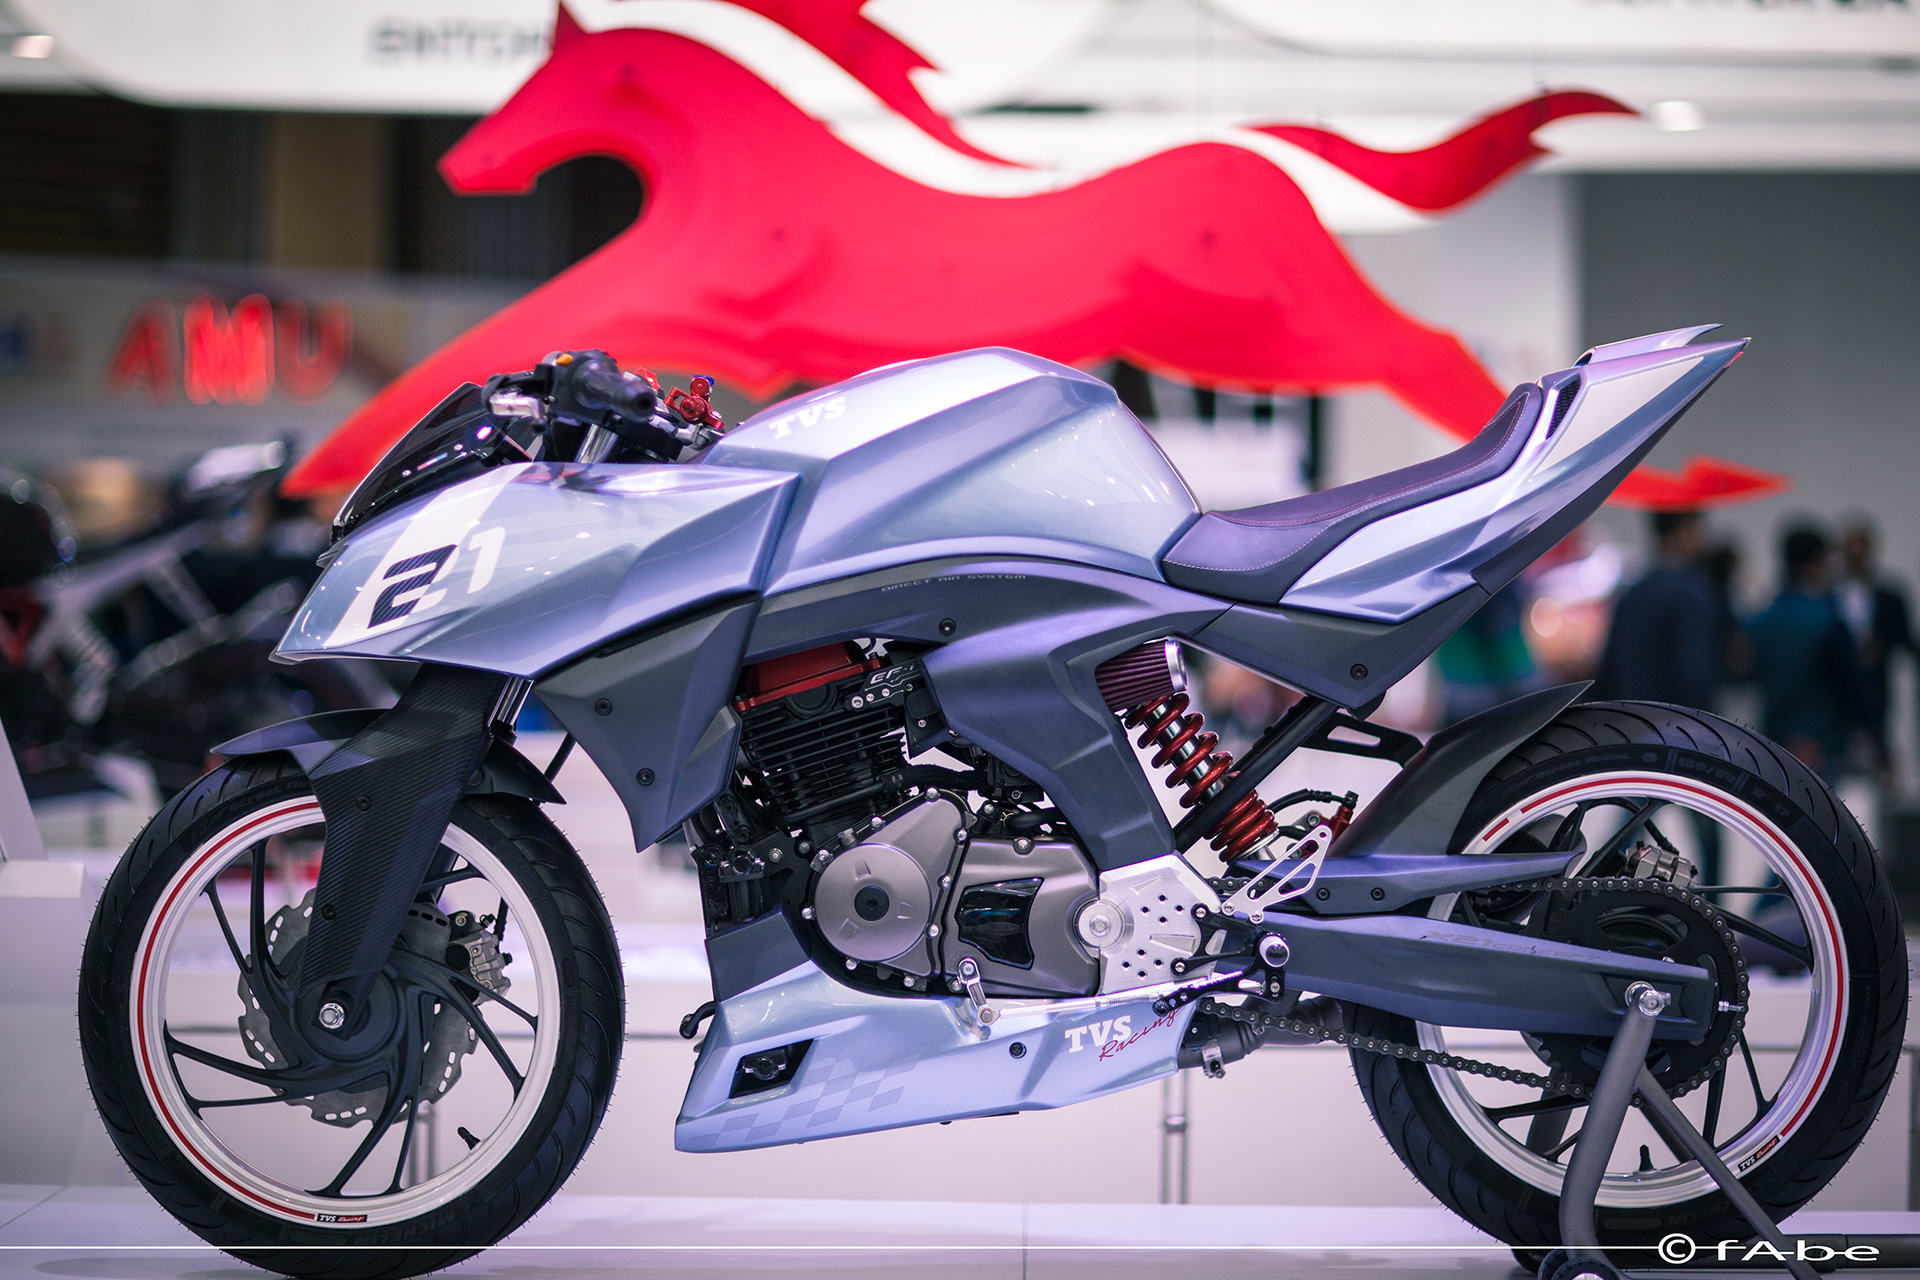 strength of tvs motors Tvs ntorq 125 scooter : two and three-wheeler maker tvs motor company today unveiled its first 125cc scooter, tvs ntorq 125 here priced at rs 61,450.